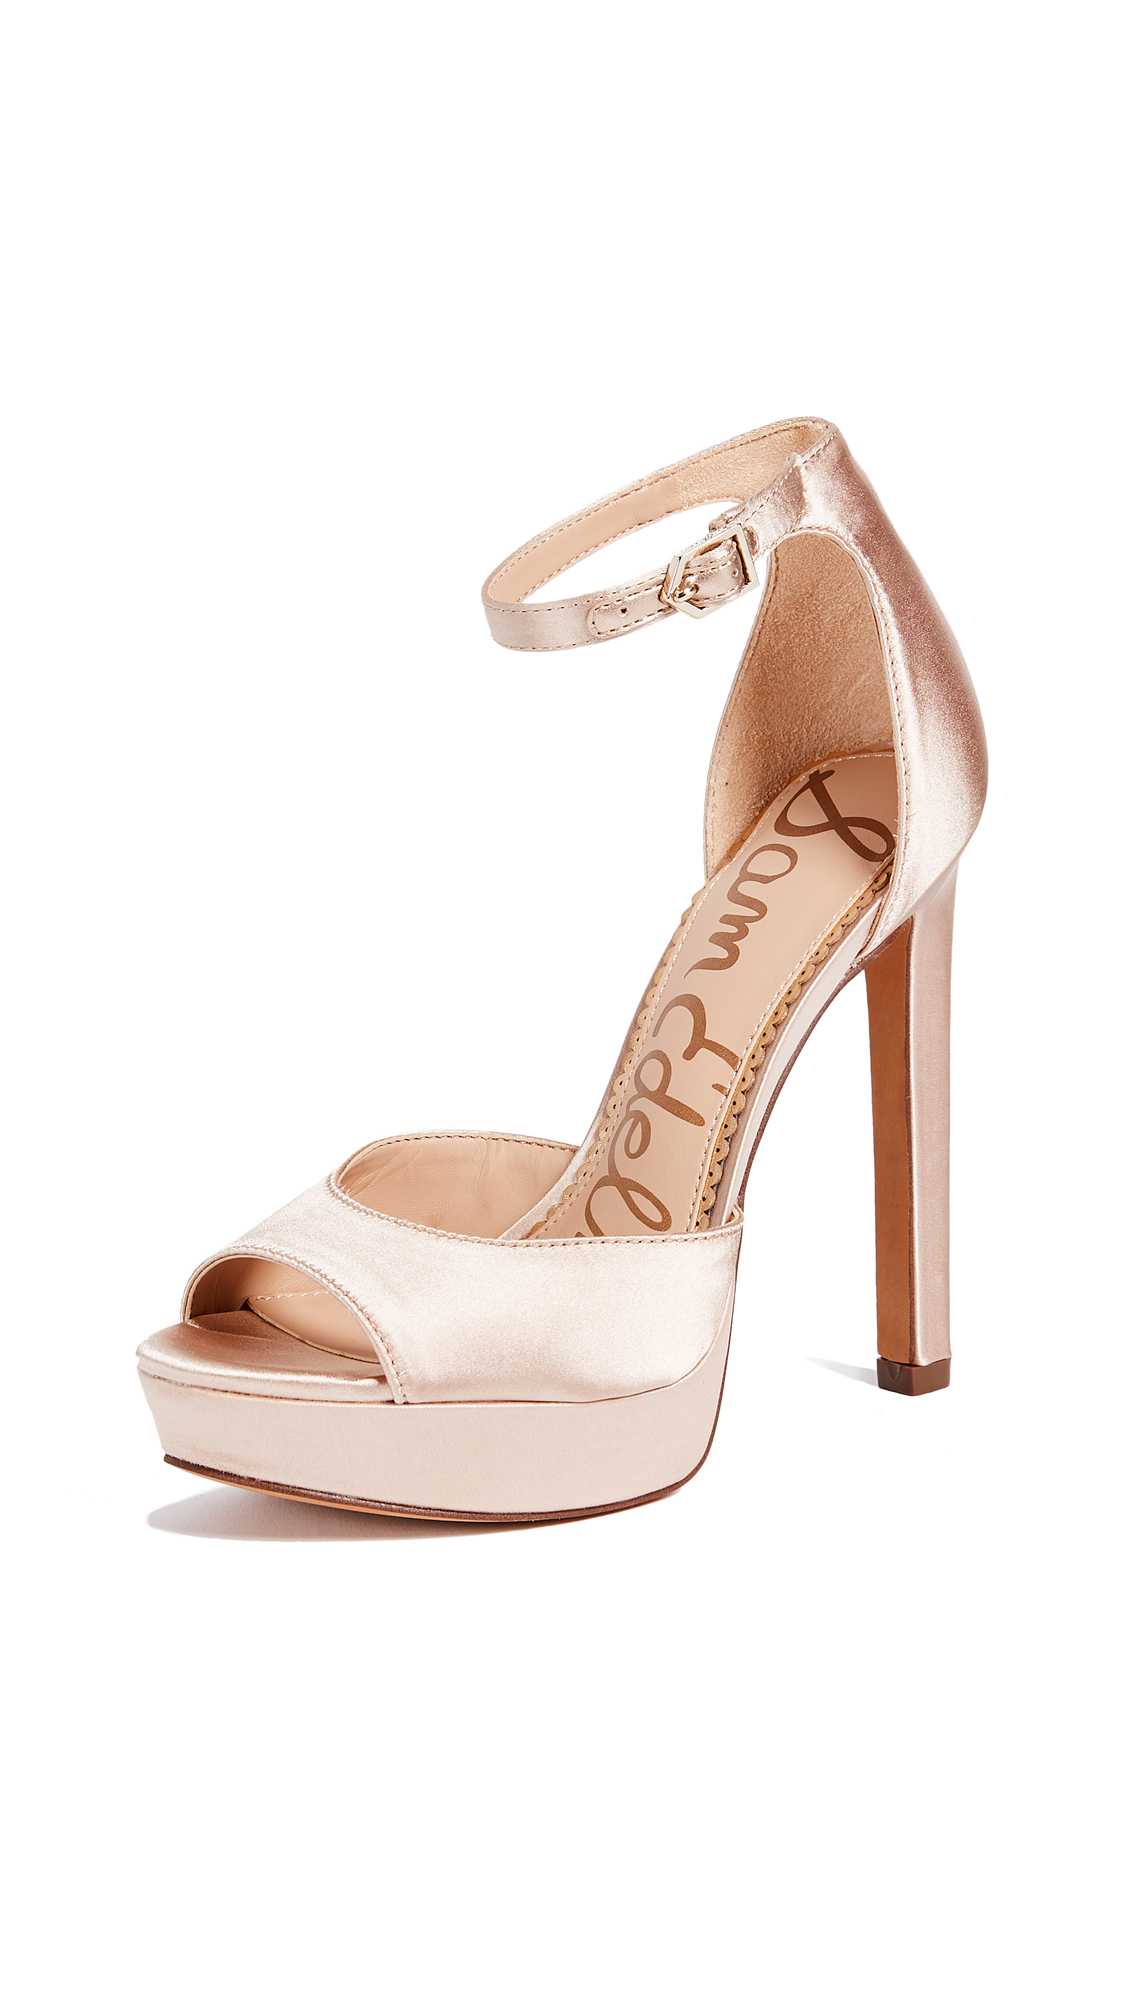 Sam Edelman Wallace Sandals - Champagne